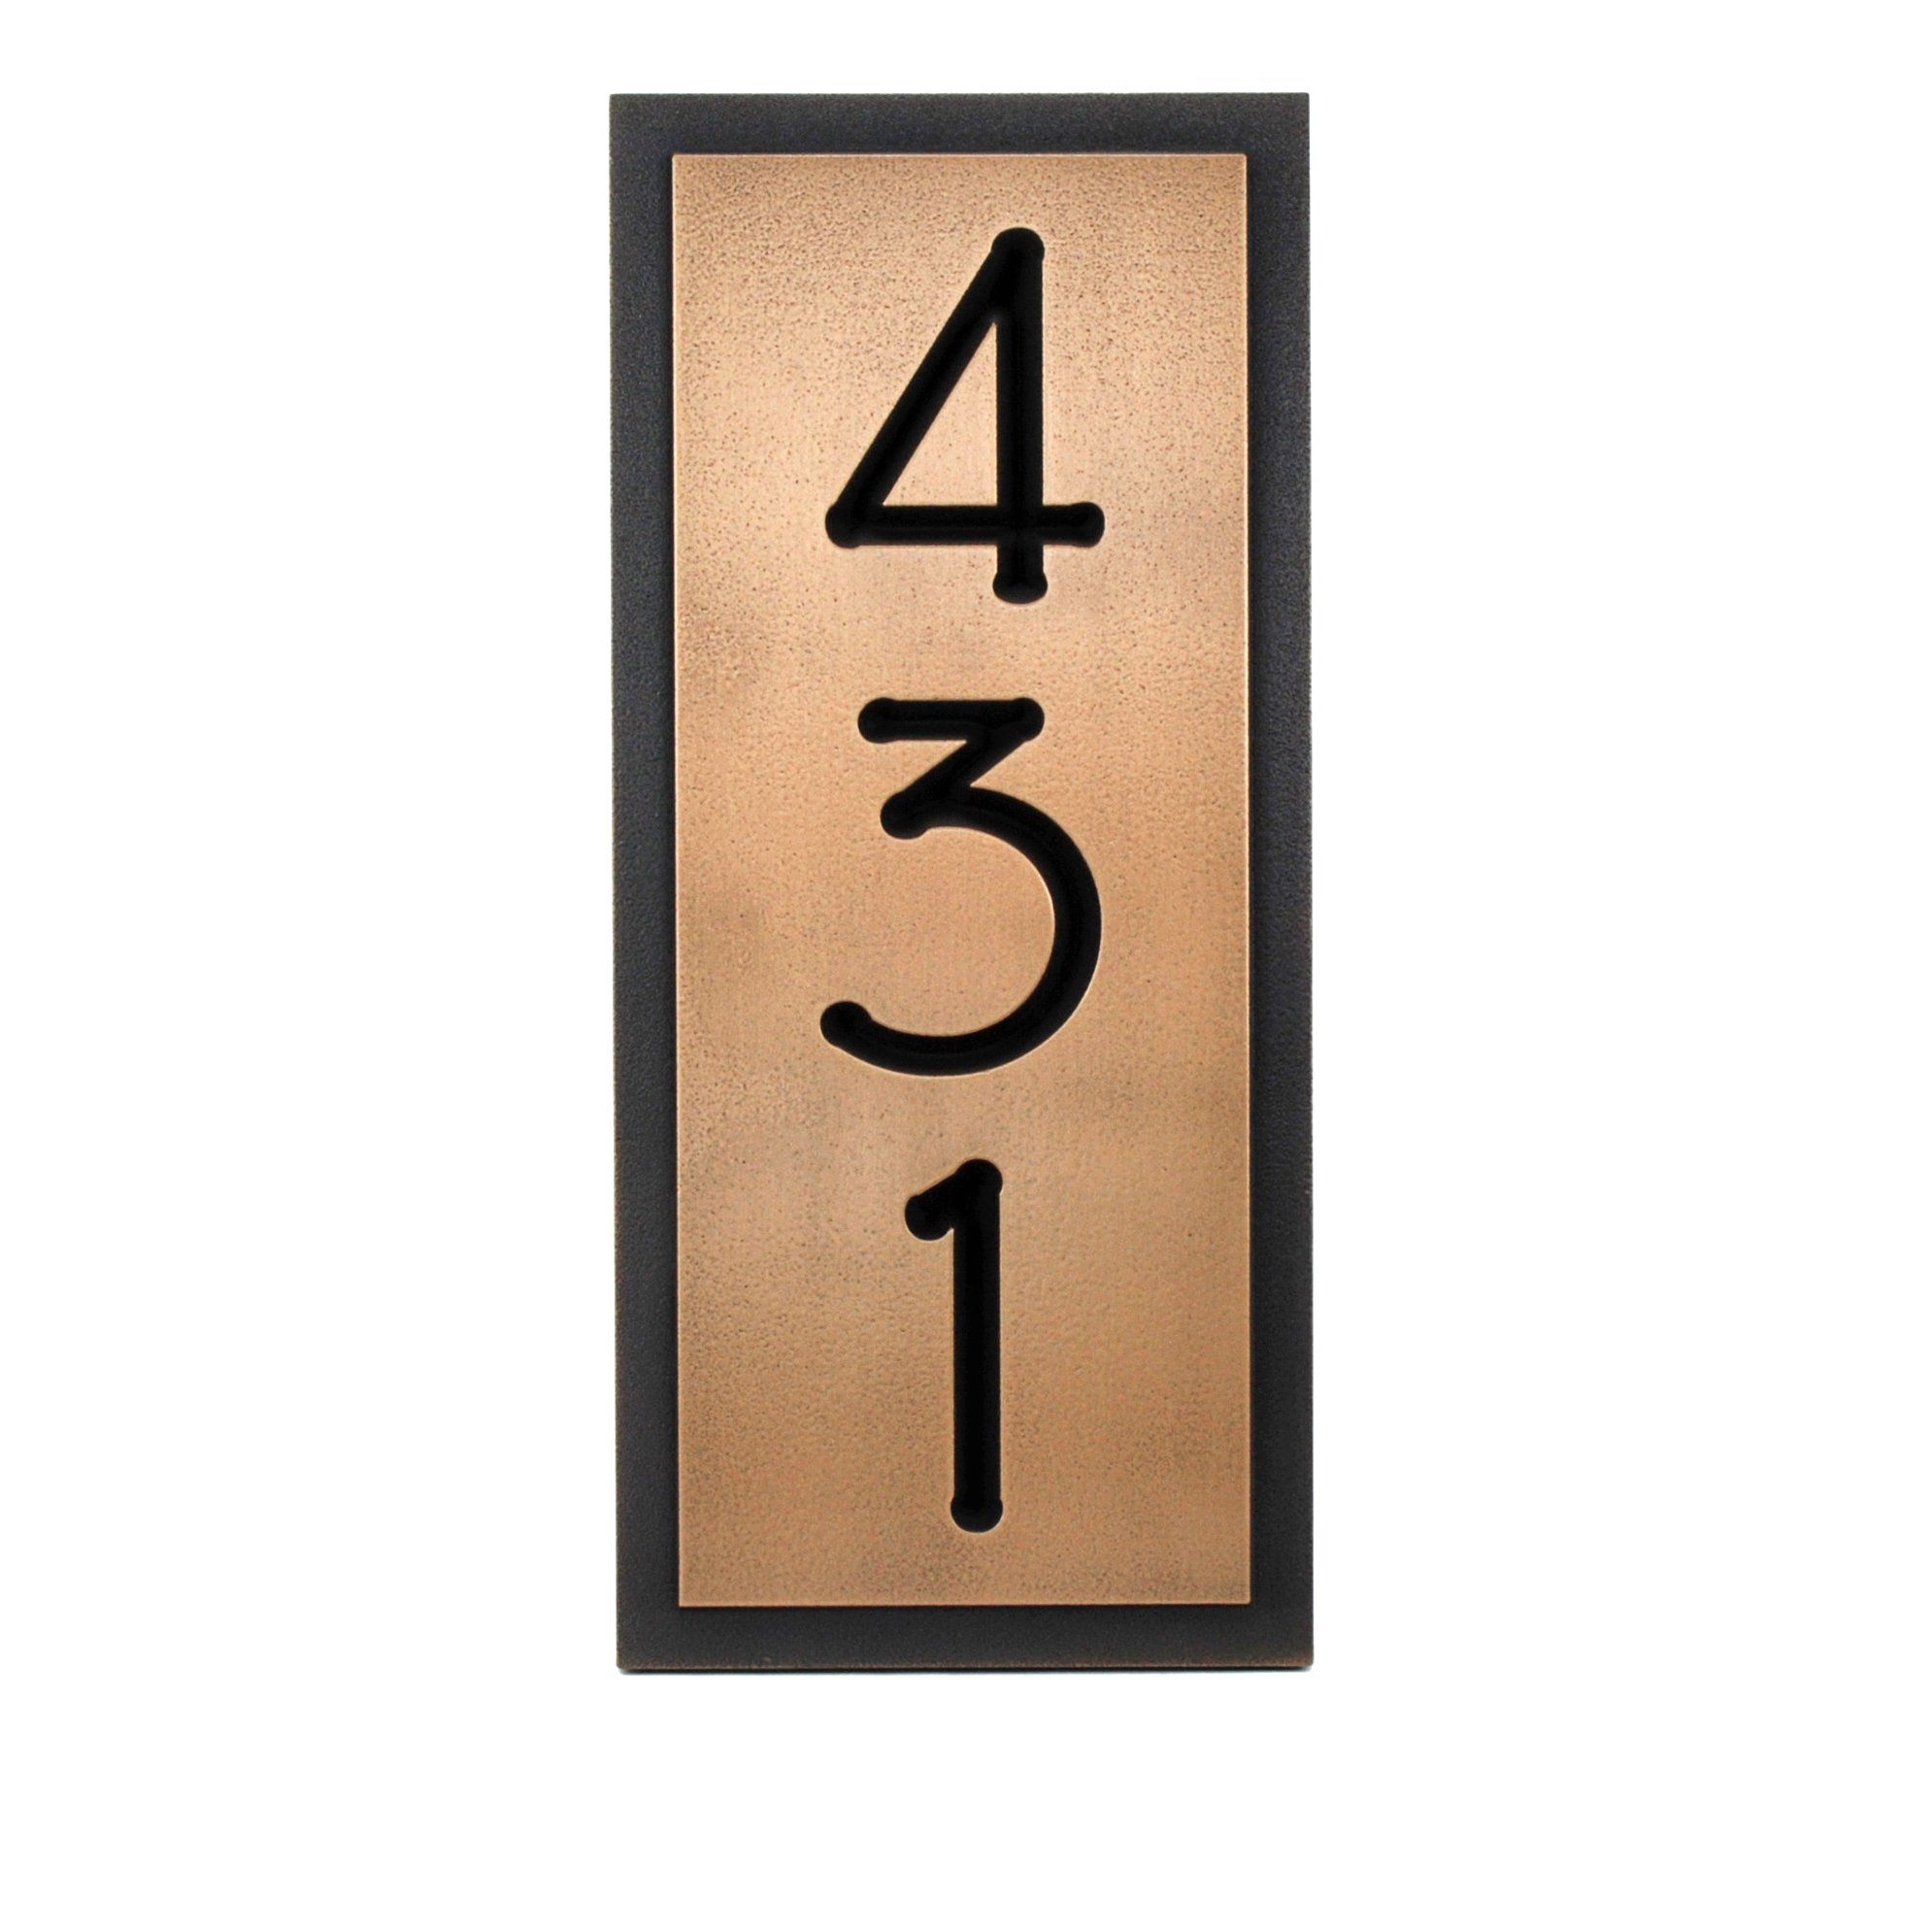 Prairie Style Vertical Home Numbers 3 Number 6.5x15 - Recessed Bronze Metal Coated by Atlas Signs and Plaques